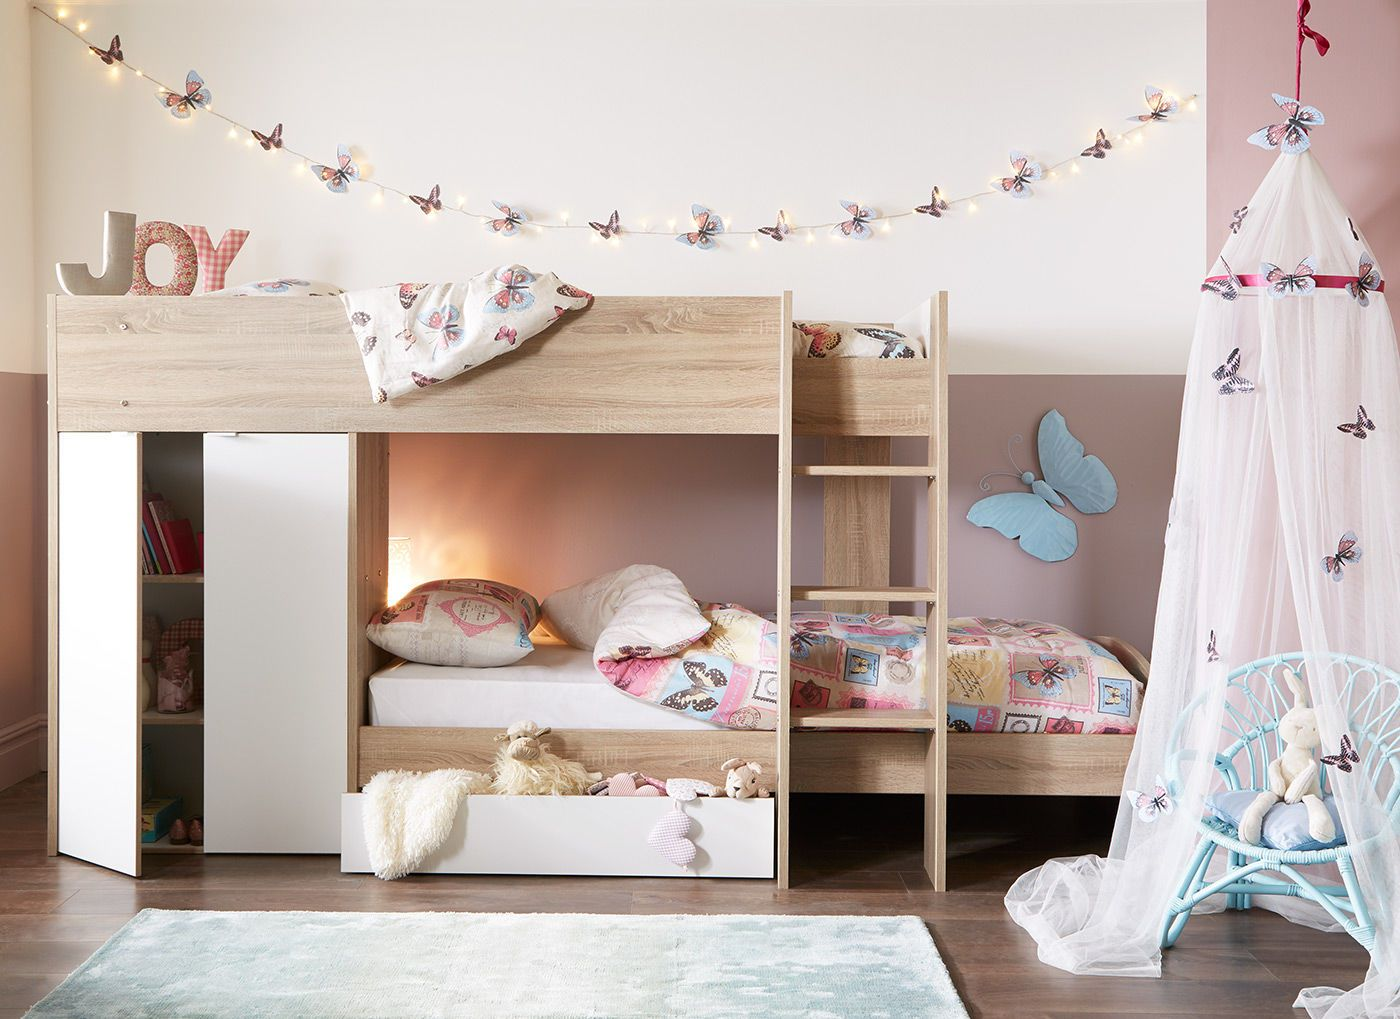 Best Finley Bunk Bed Frame With Storage In 2020 Bunk Beds With Storage Modern Bunk Beds Kid Beds 400 x 300